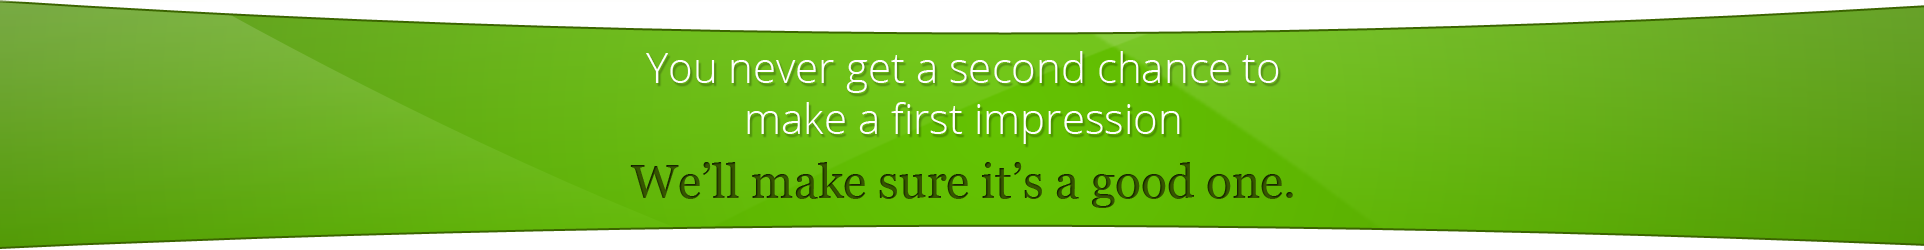 You never get a second chance to make a first impression. We'll make sure it's a good one.